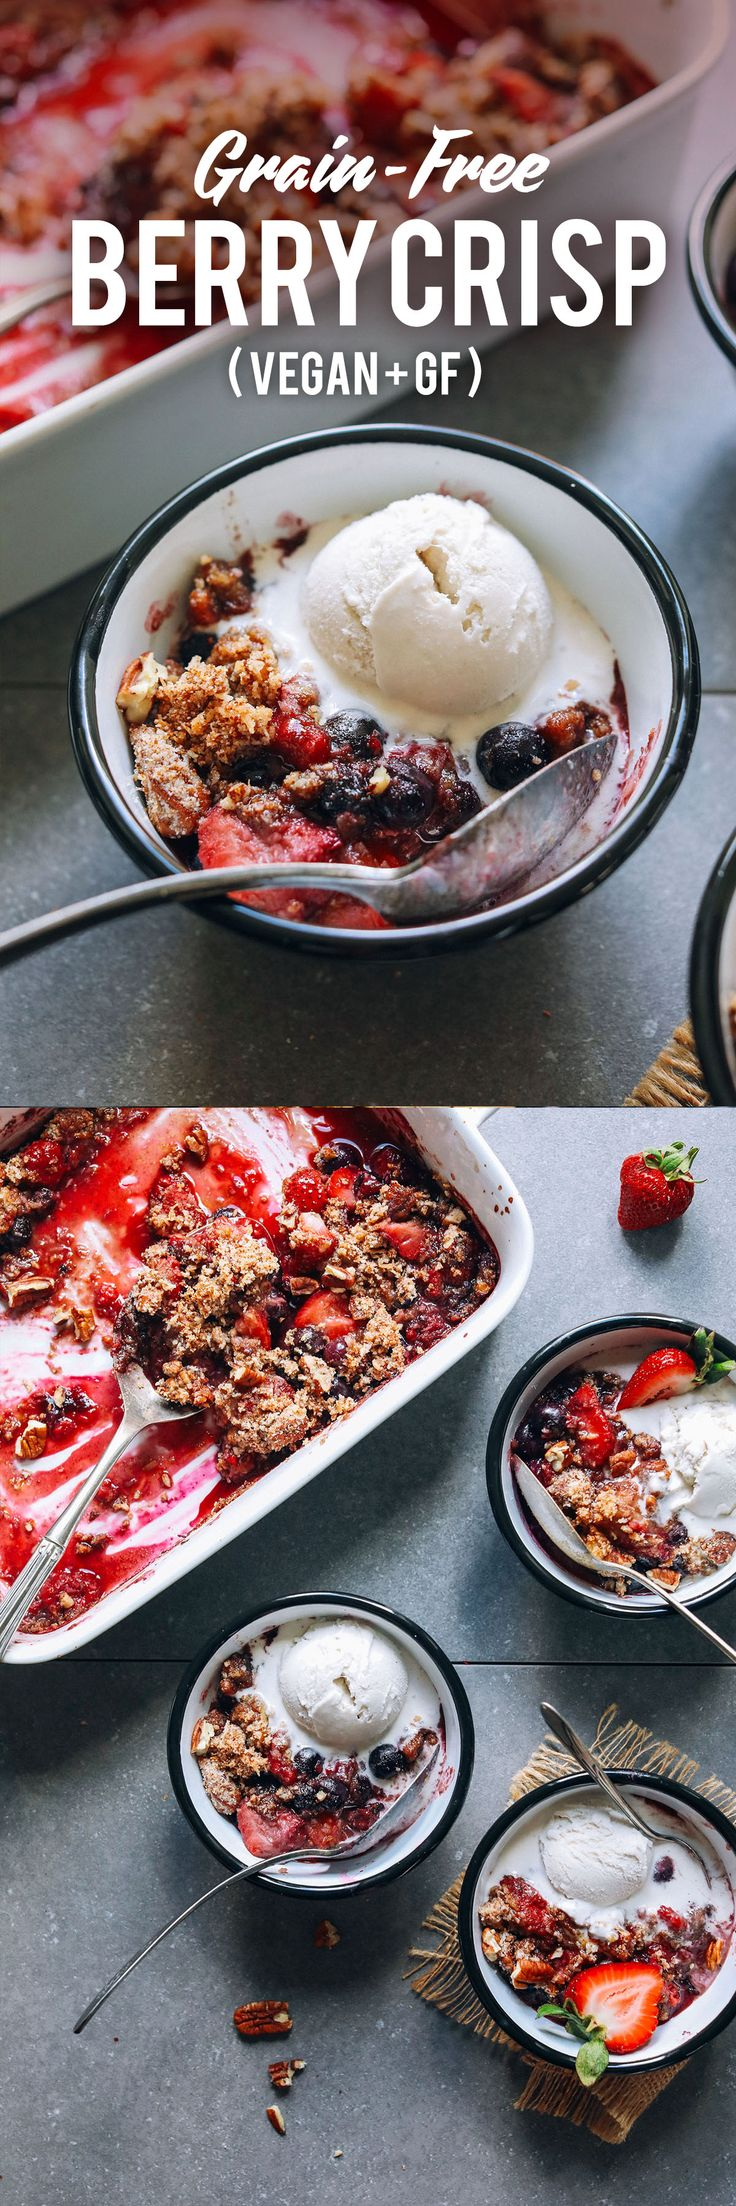 AMAZING Grain-Free Berry Crisp! 10 ingr. & naturally sweetened. Ingredients: mixed berries, maple syrup, starch, lemon juice, flour, shredded coconut, chopped nuts, coconut sugar, sea salt, oil or butter, maple syrup